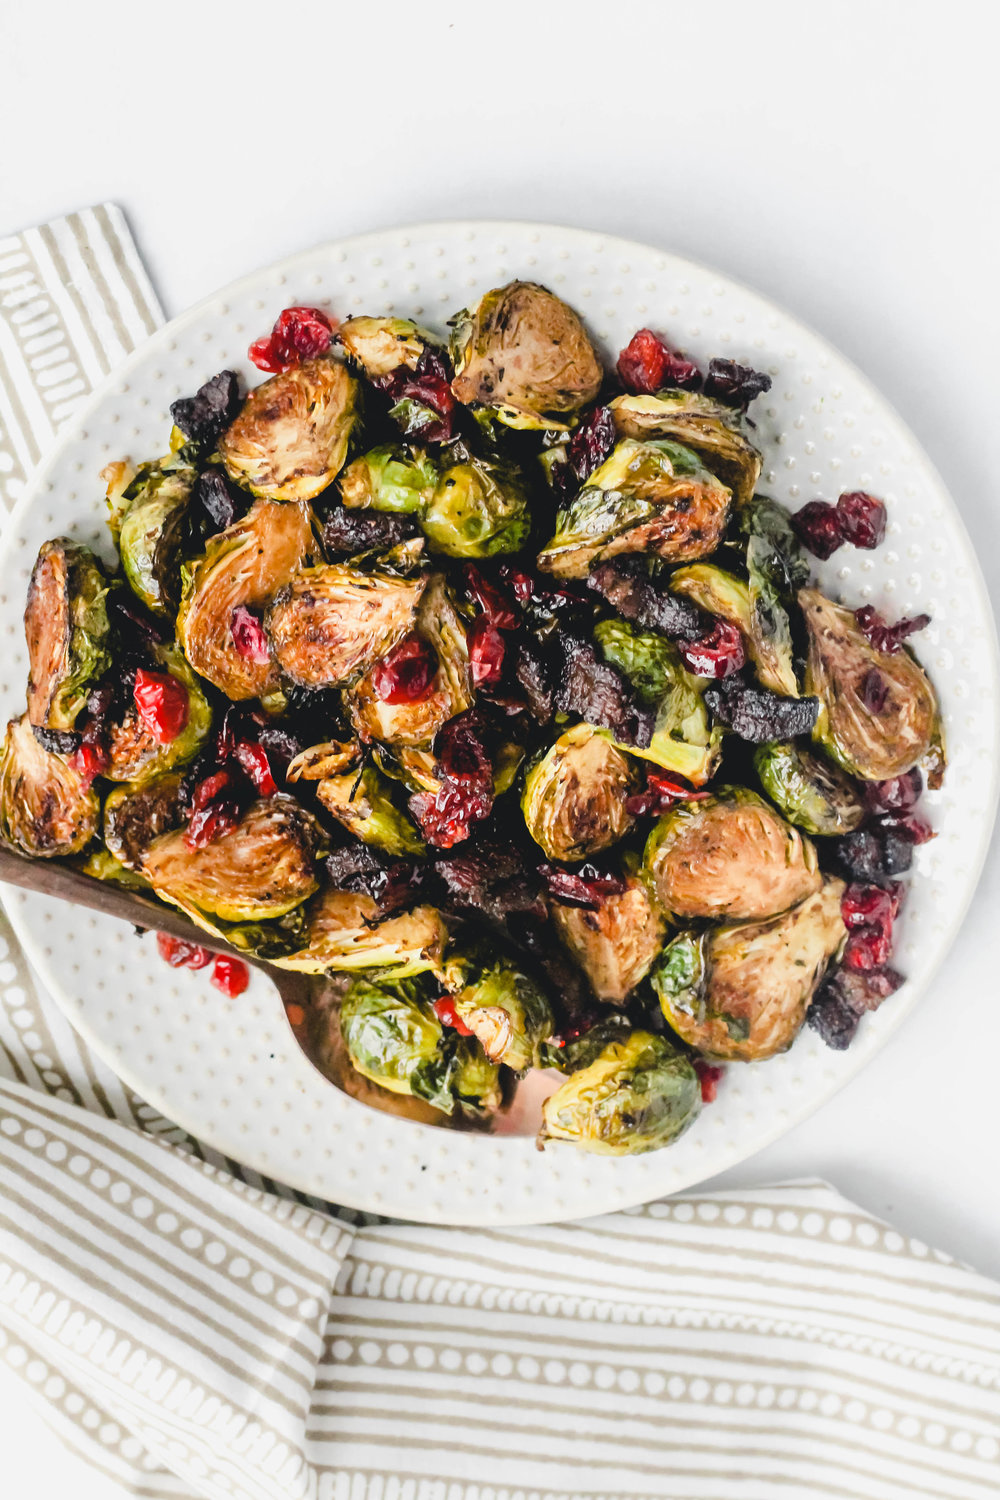 Roasted Brussel Sprouts with Balsamic, Bacon, and Cranberries